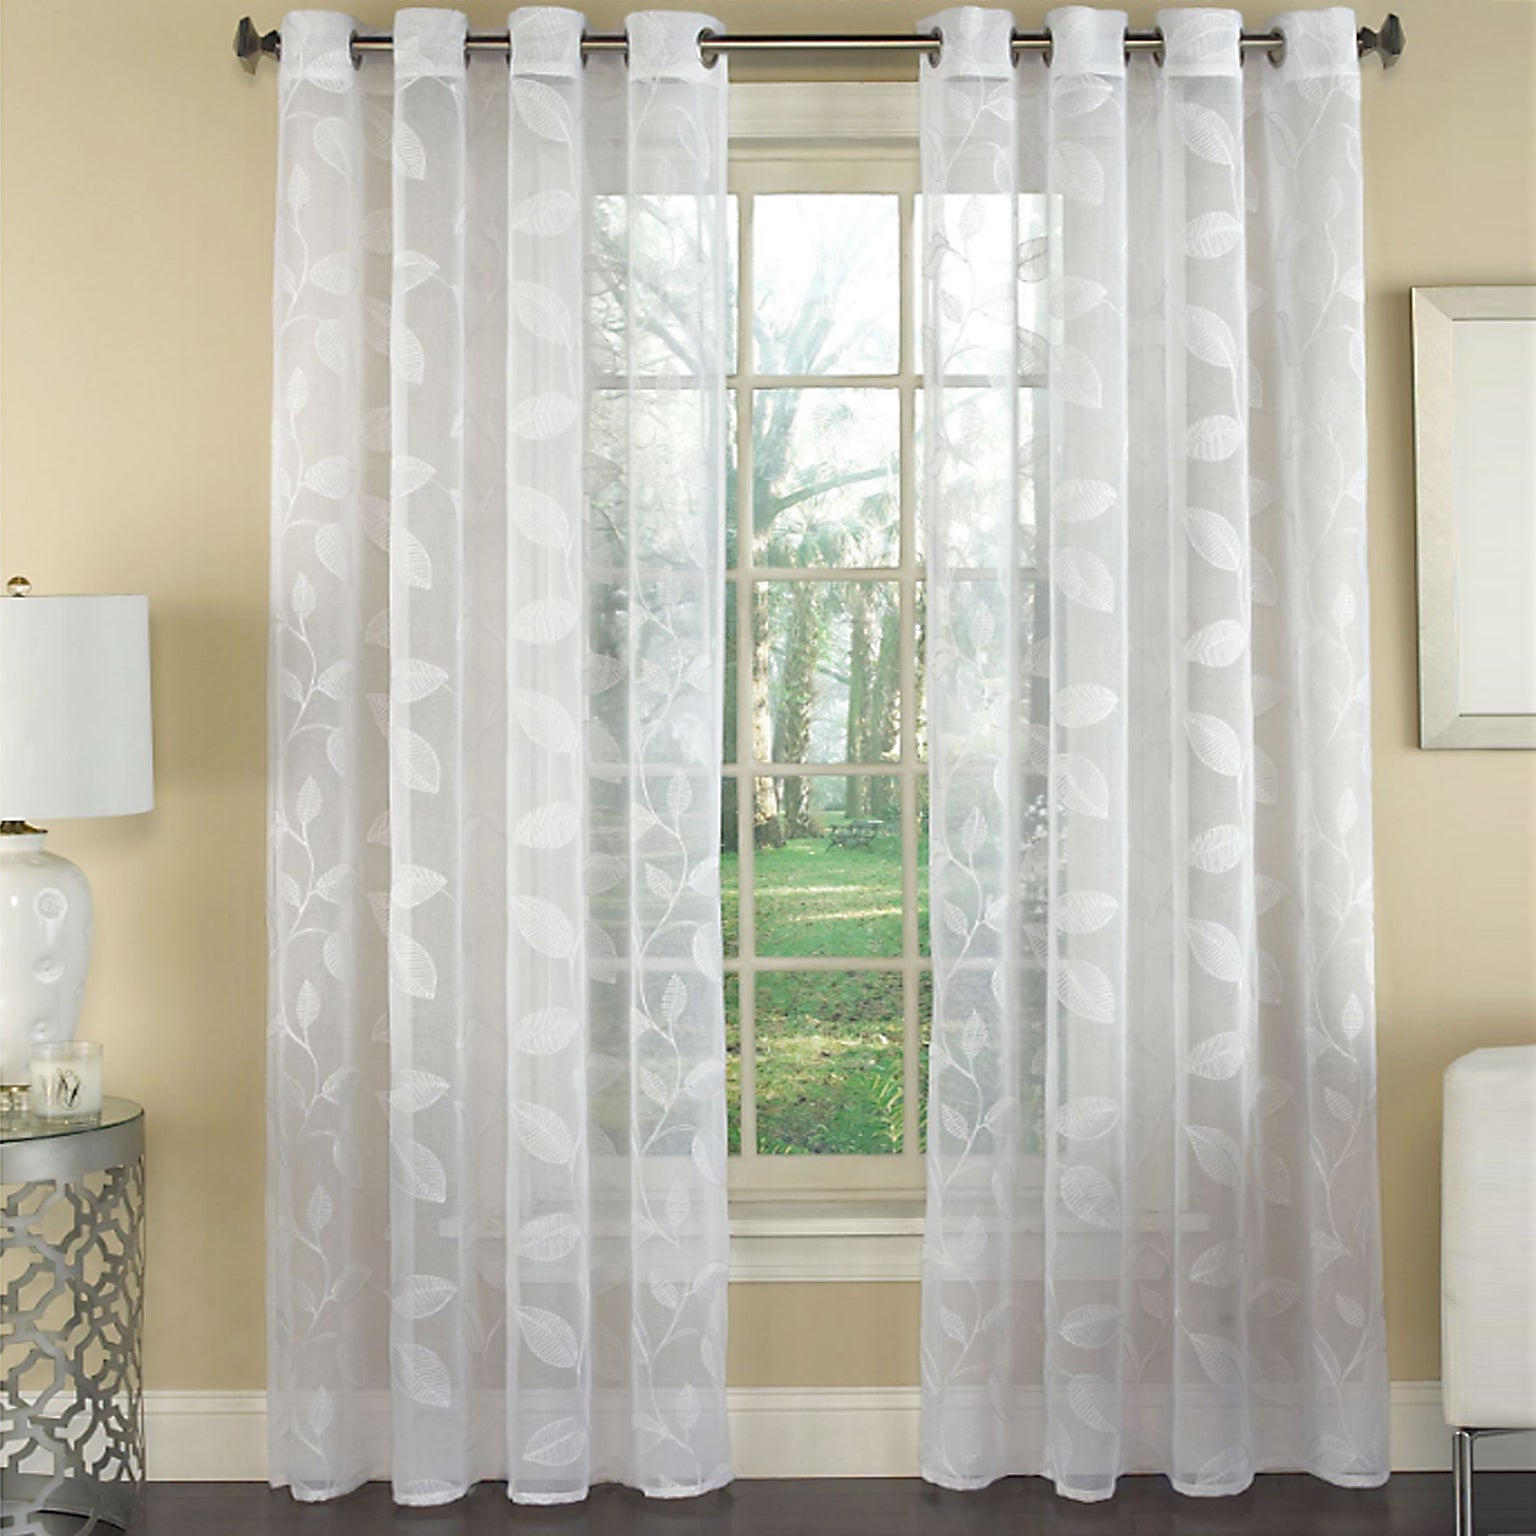 Widely Used Avery Semi Sheer Embroidered Leaf Faux Linen Grommet Window Curtain Panel – 84x53 Pertaining To Kida Embroidered Sheer Curtain Panels (View 10 of 20)